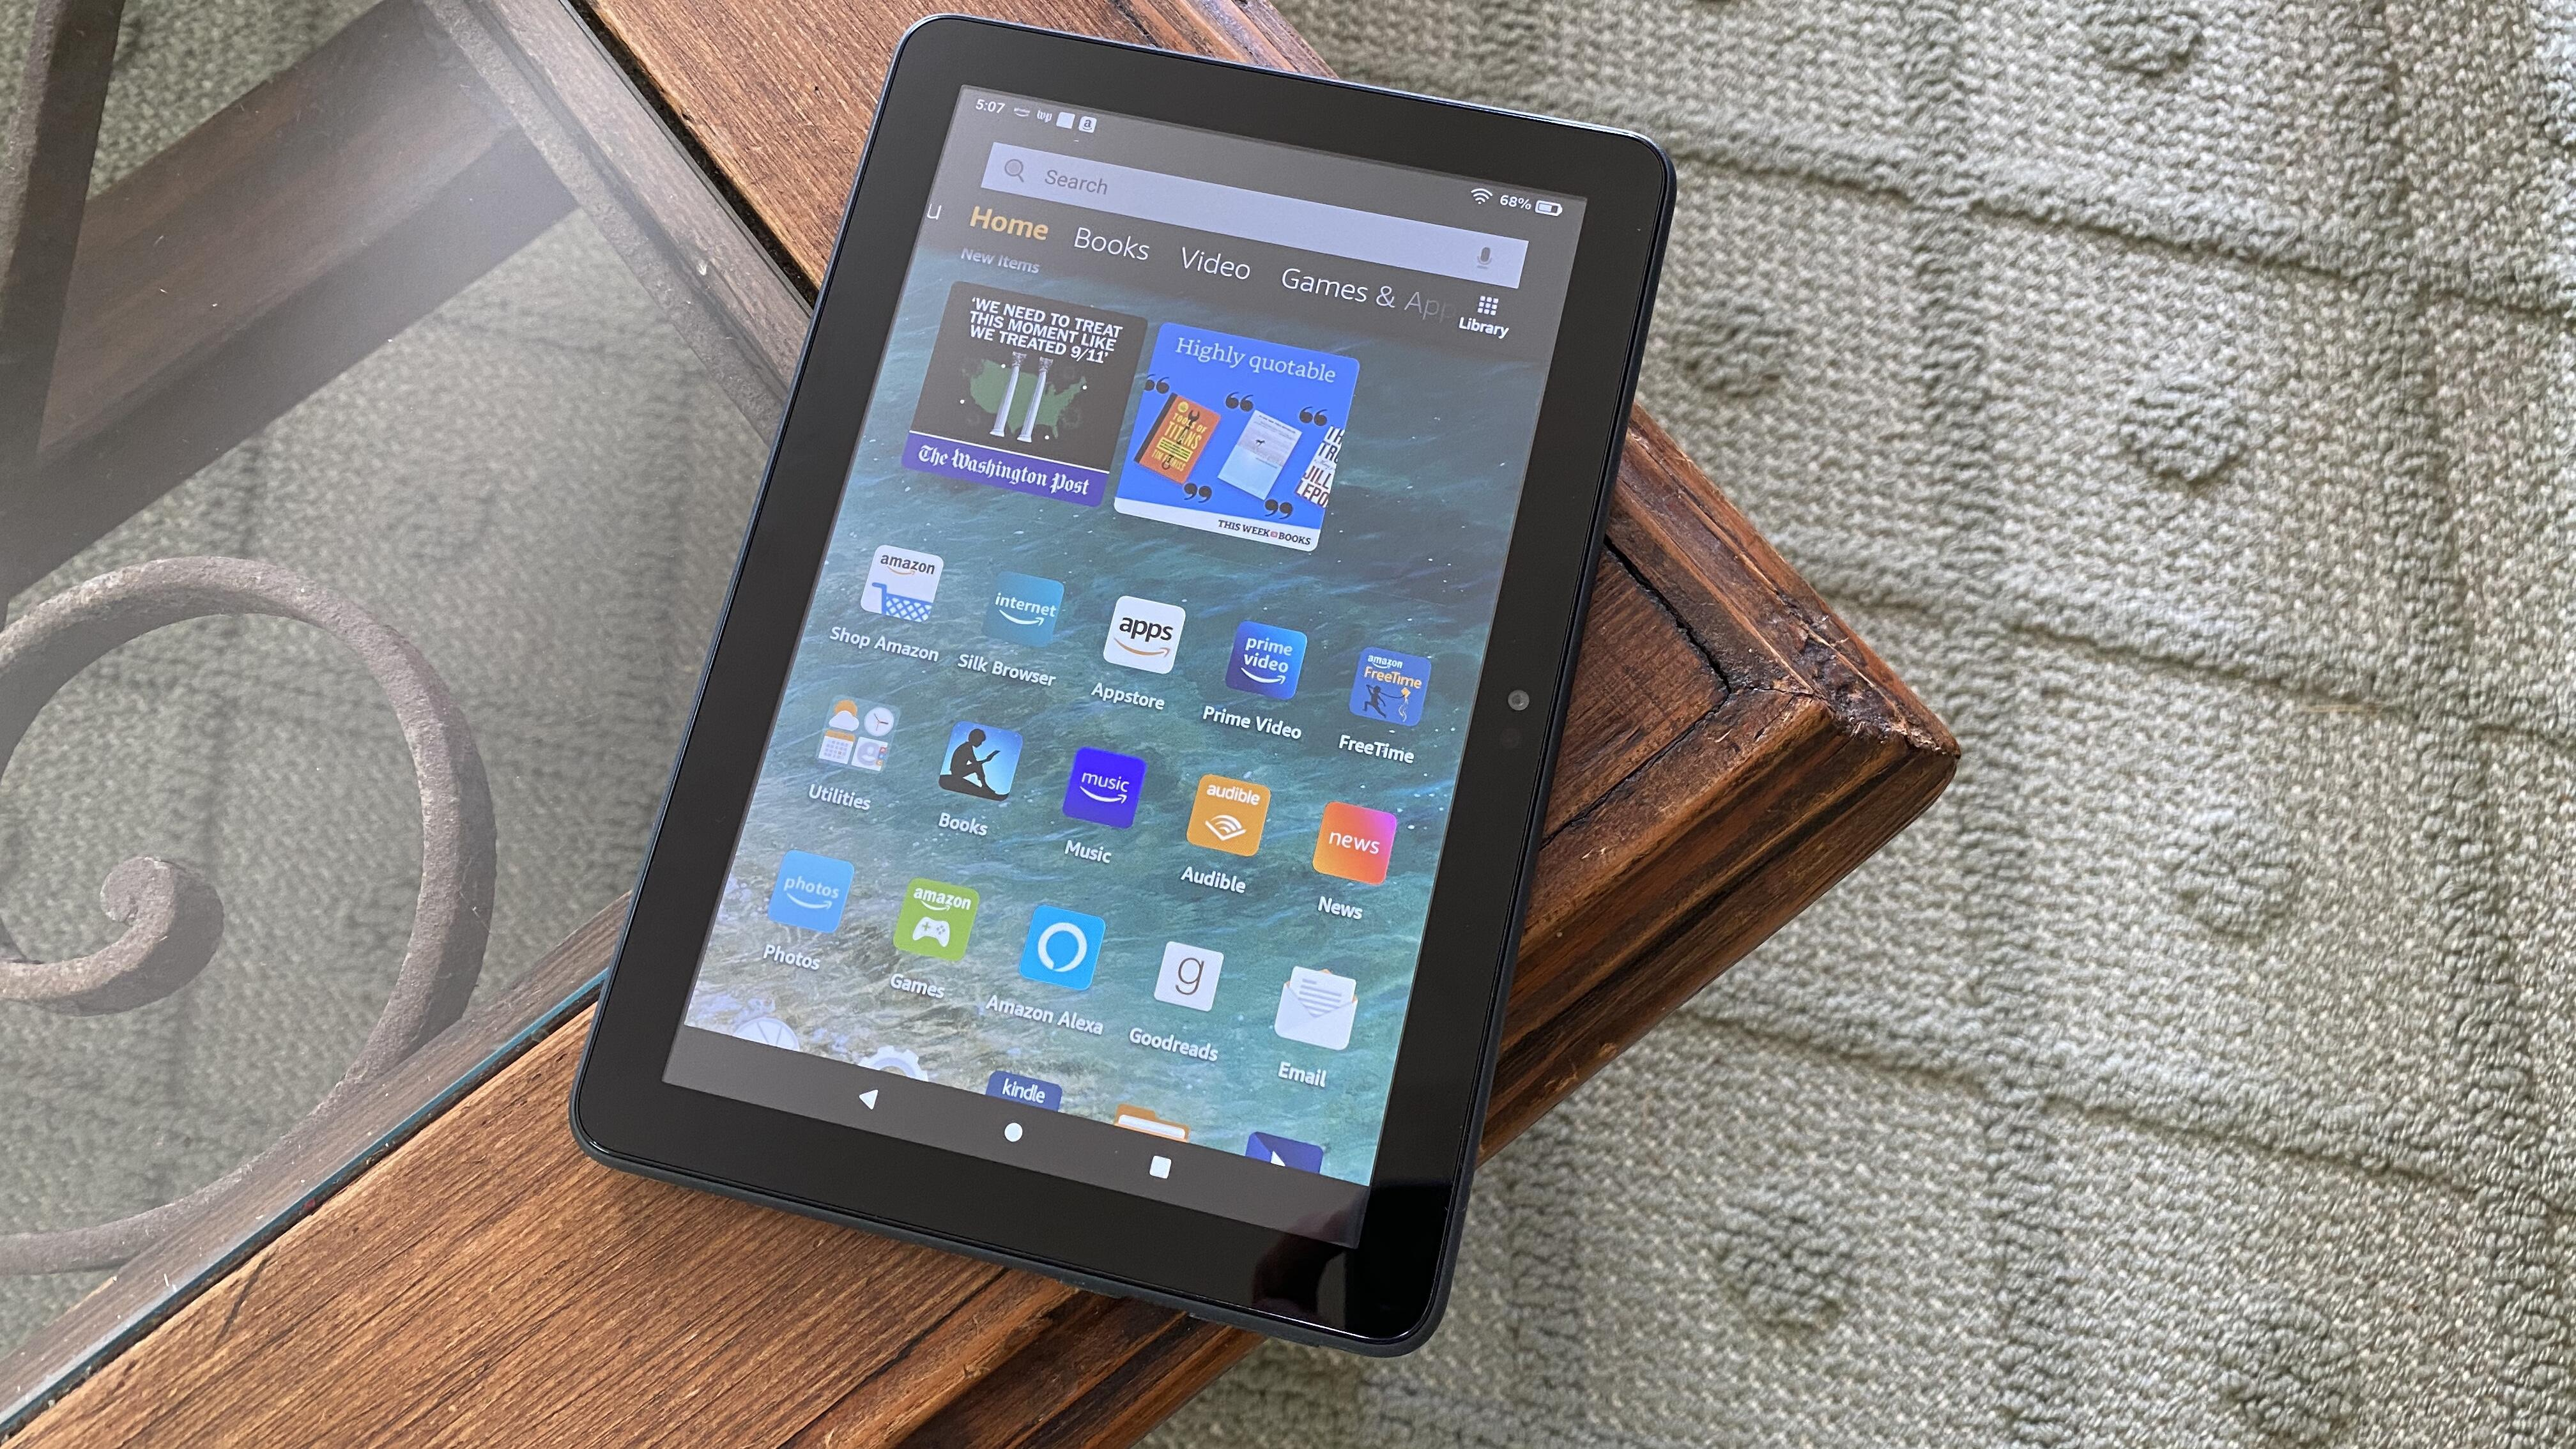 Flash sale: The Amazon Fire HD 8 Plus tablet with extras for